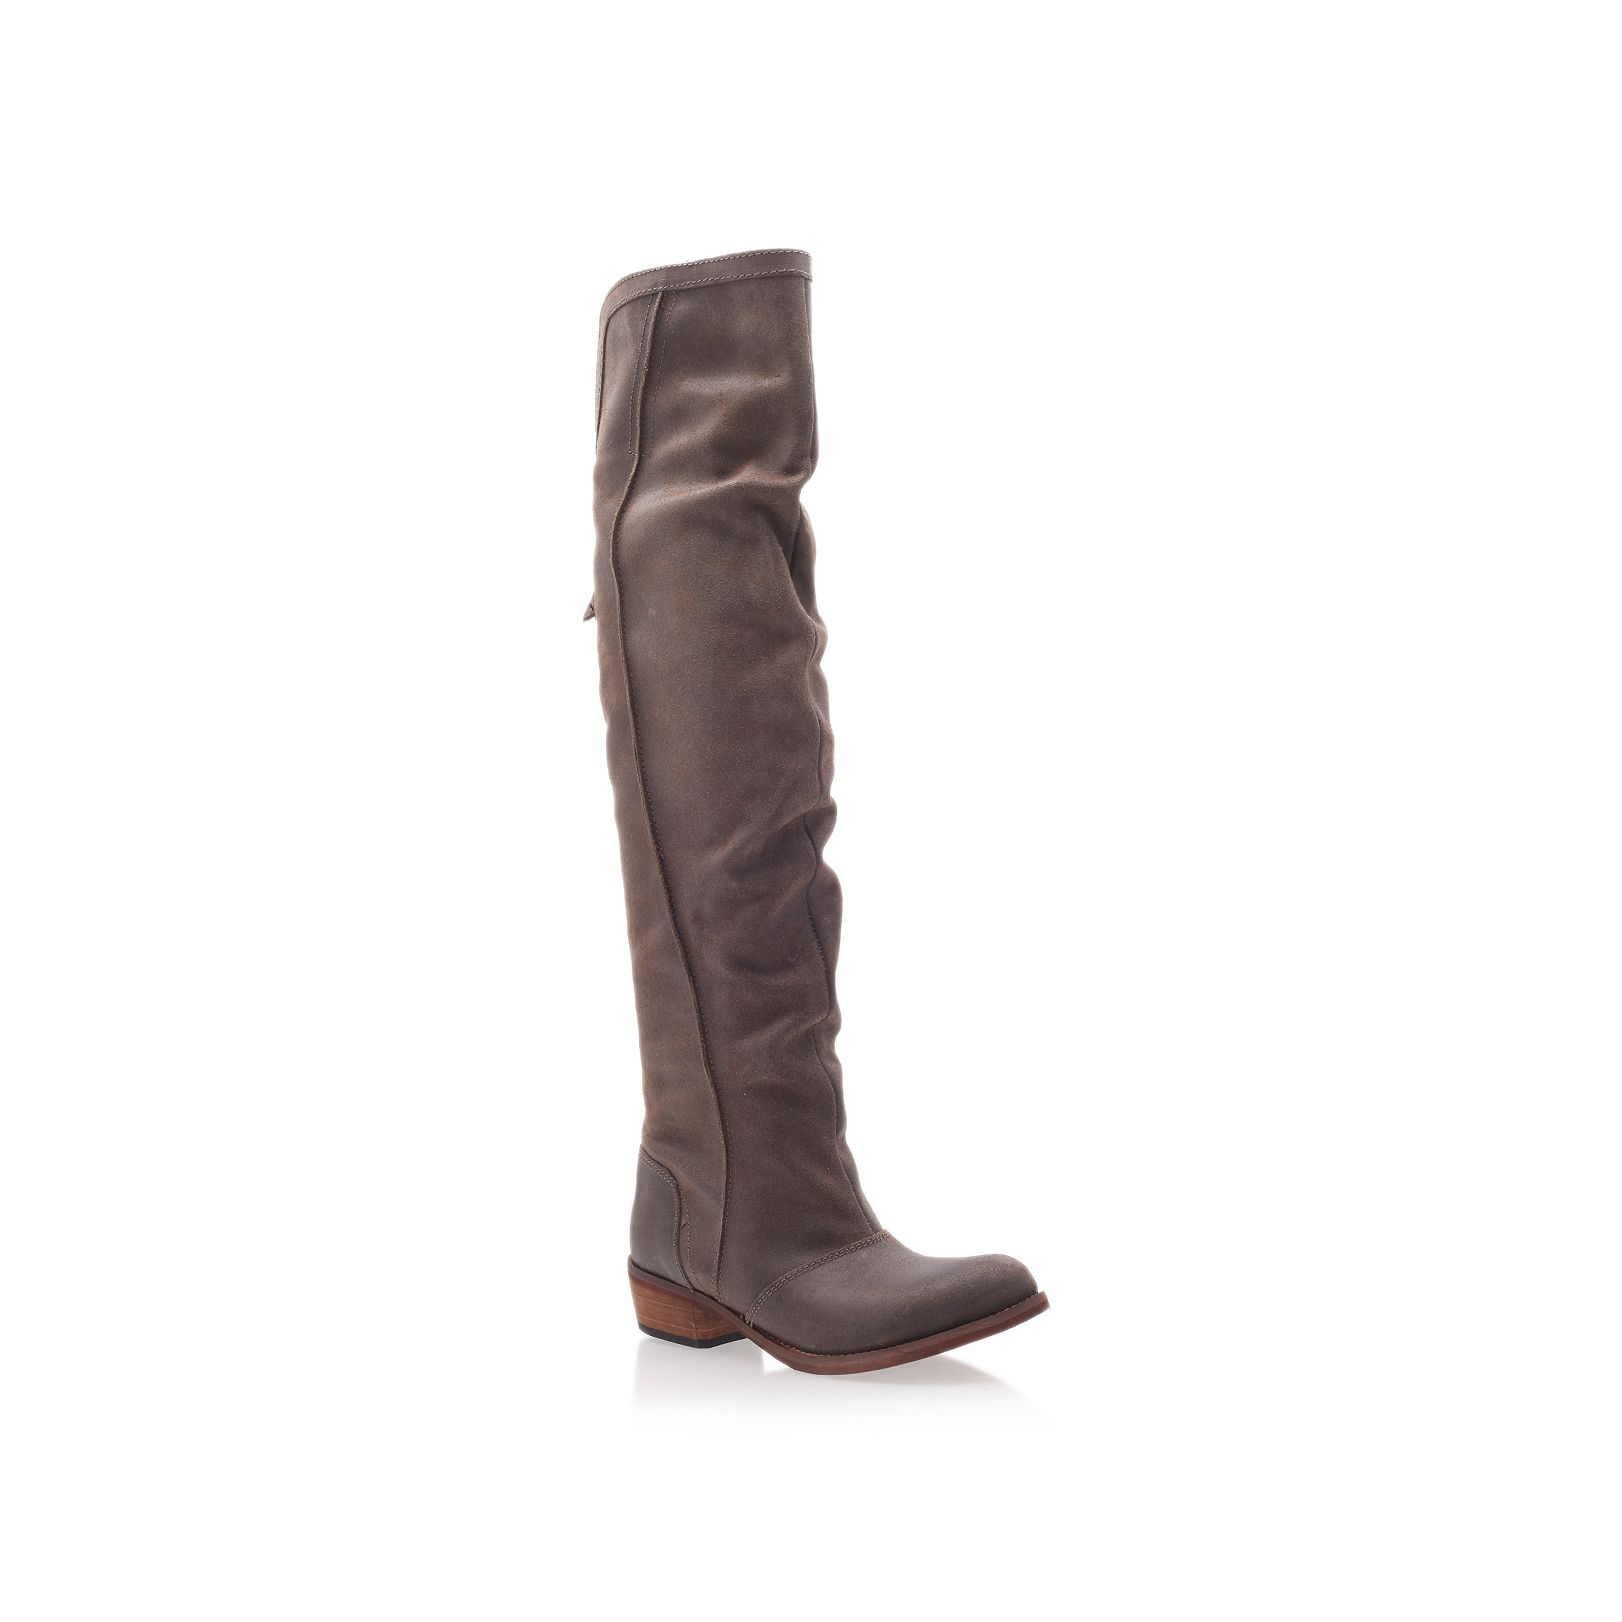 Wentworth knee boots